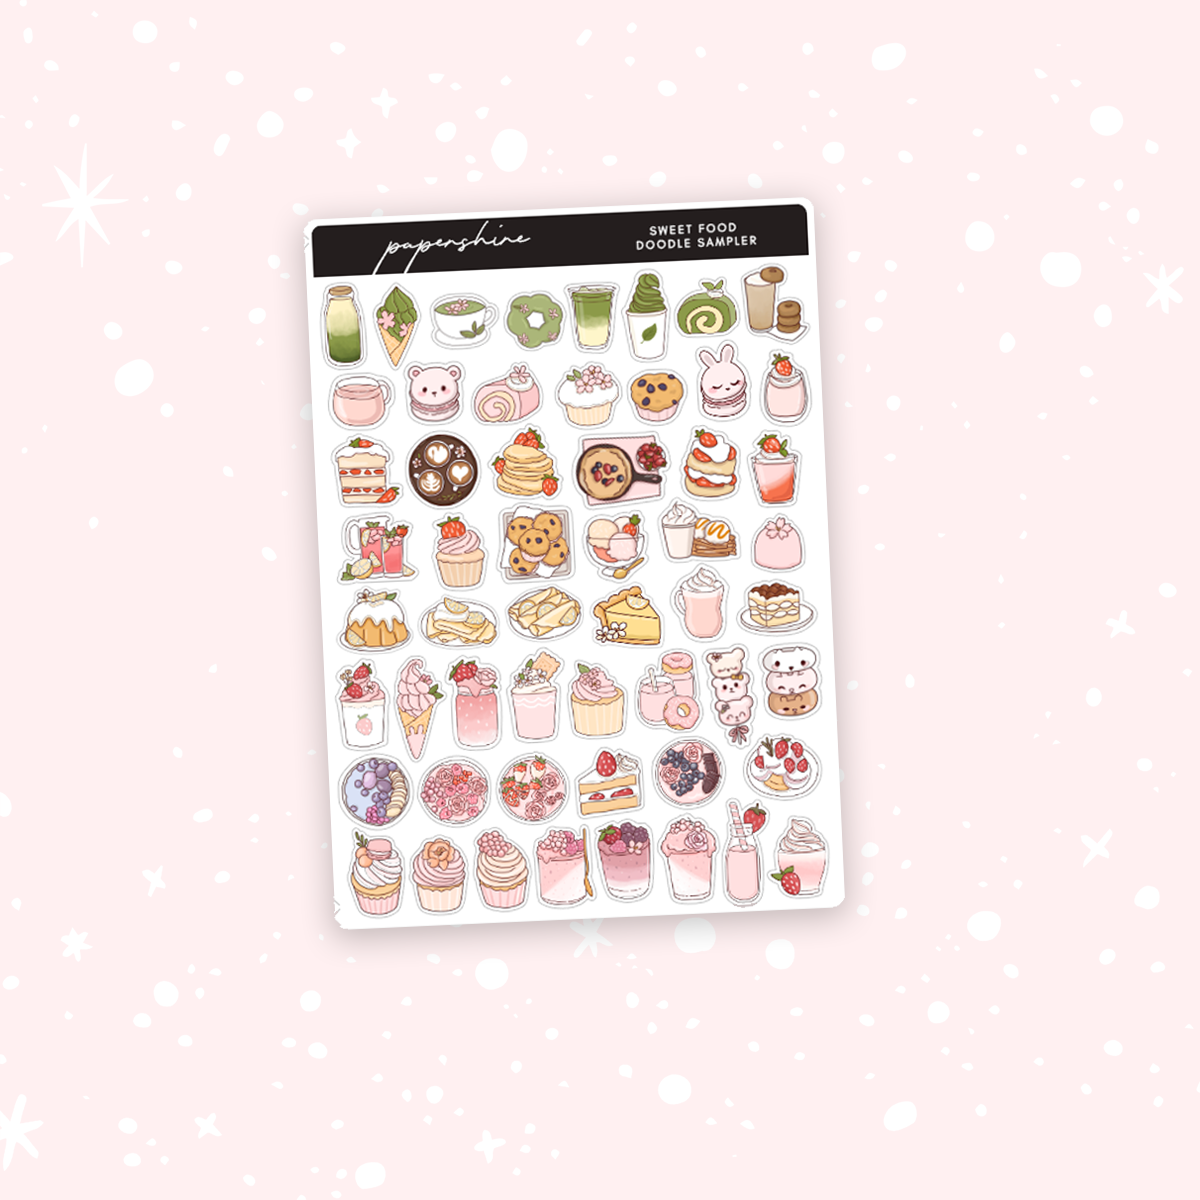 Sweet Food Sampler Stickers